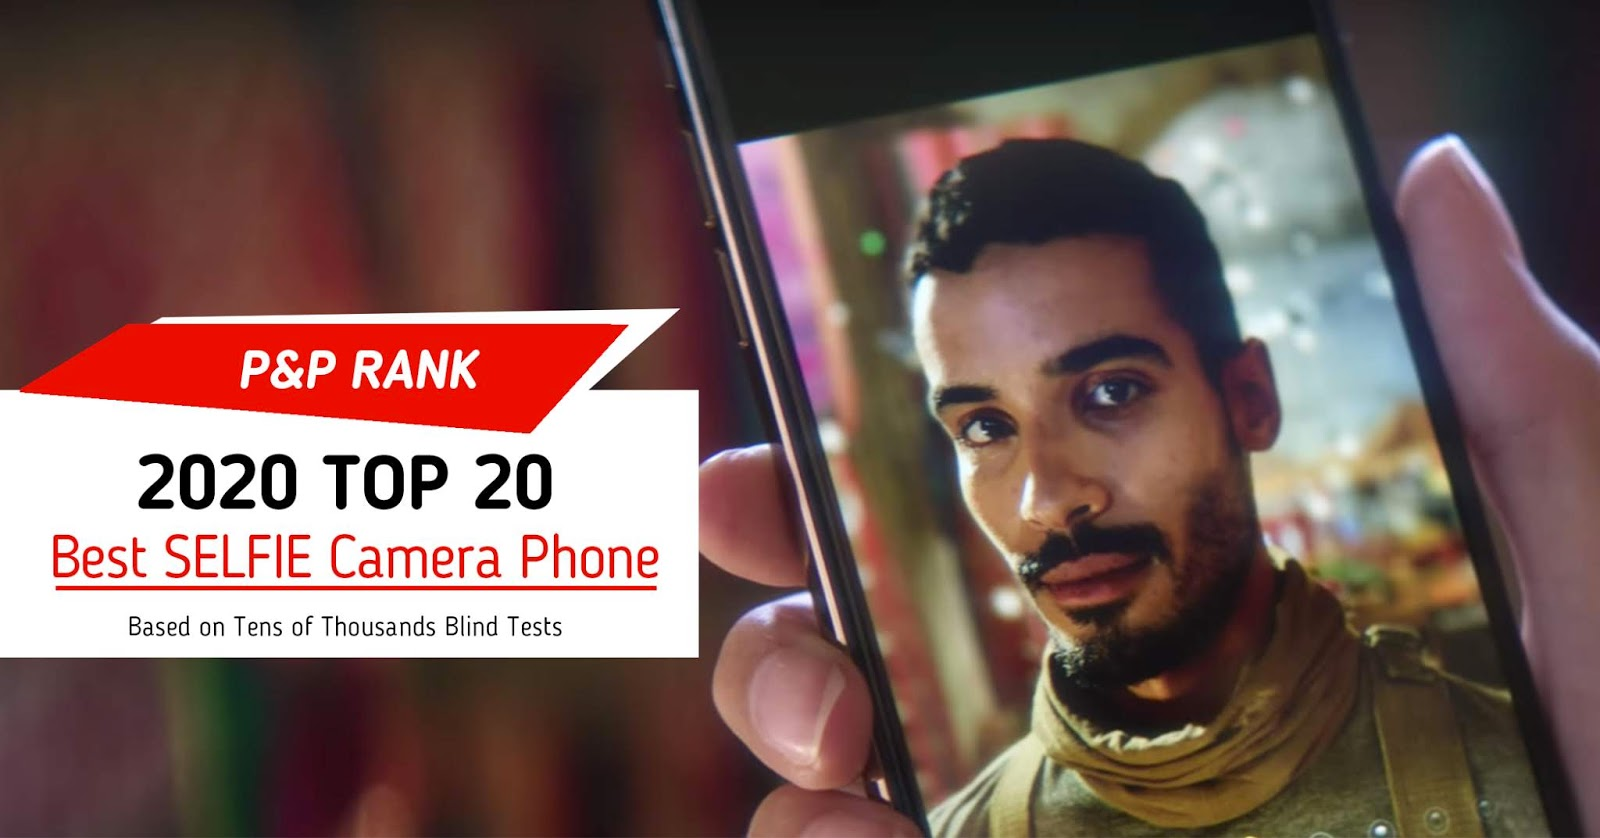 By comparing mobile phone images taken under the same light conditions, people can vote for the picture they prefer in each scene. You can find Best Camera Phone and Best Selfie Camera at P&P RANK.